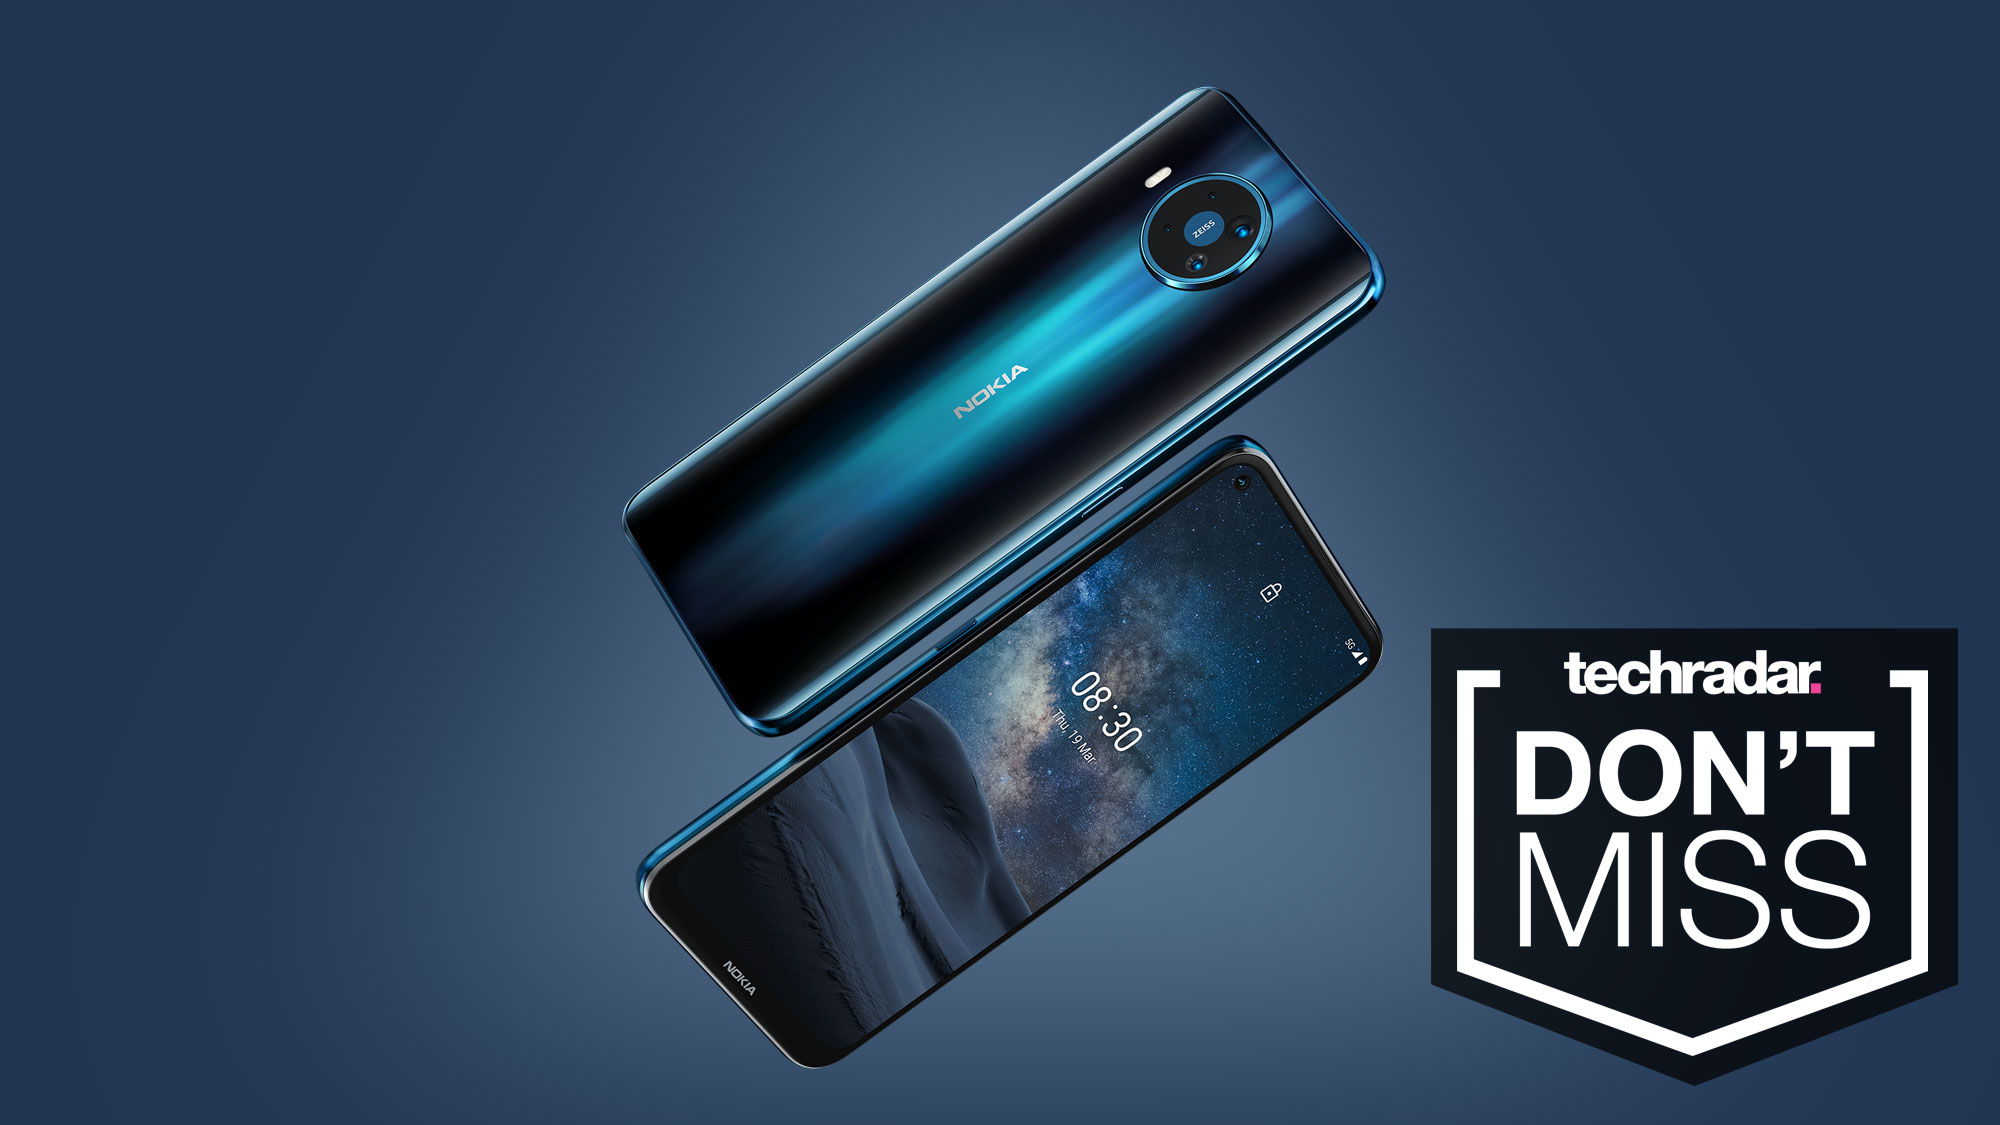 Some Of The Cheapest Black Friday Phone Deals So Far Are On These Nokia Phones Techradar